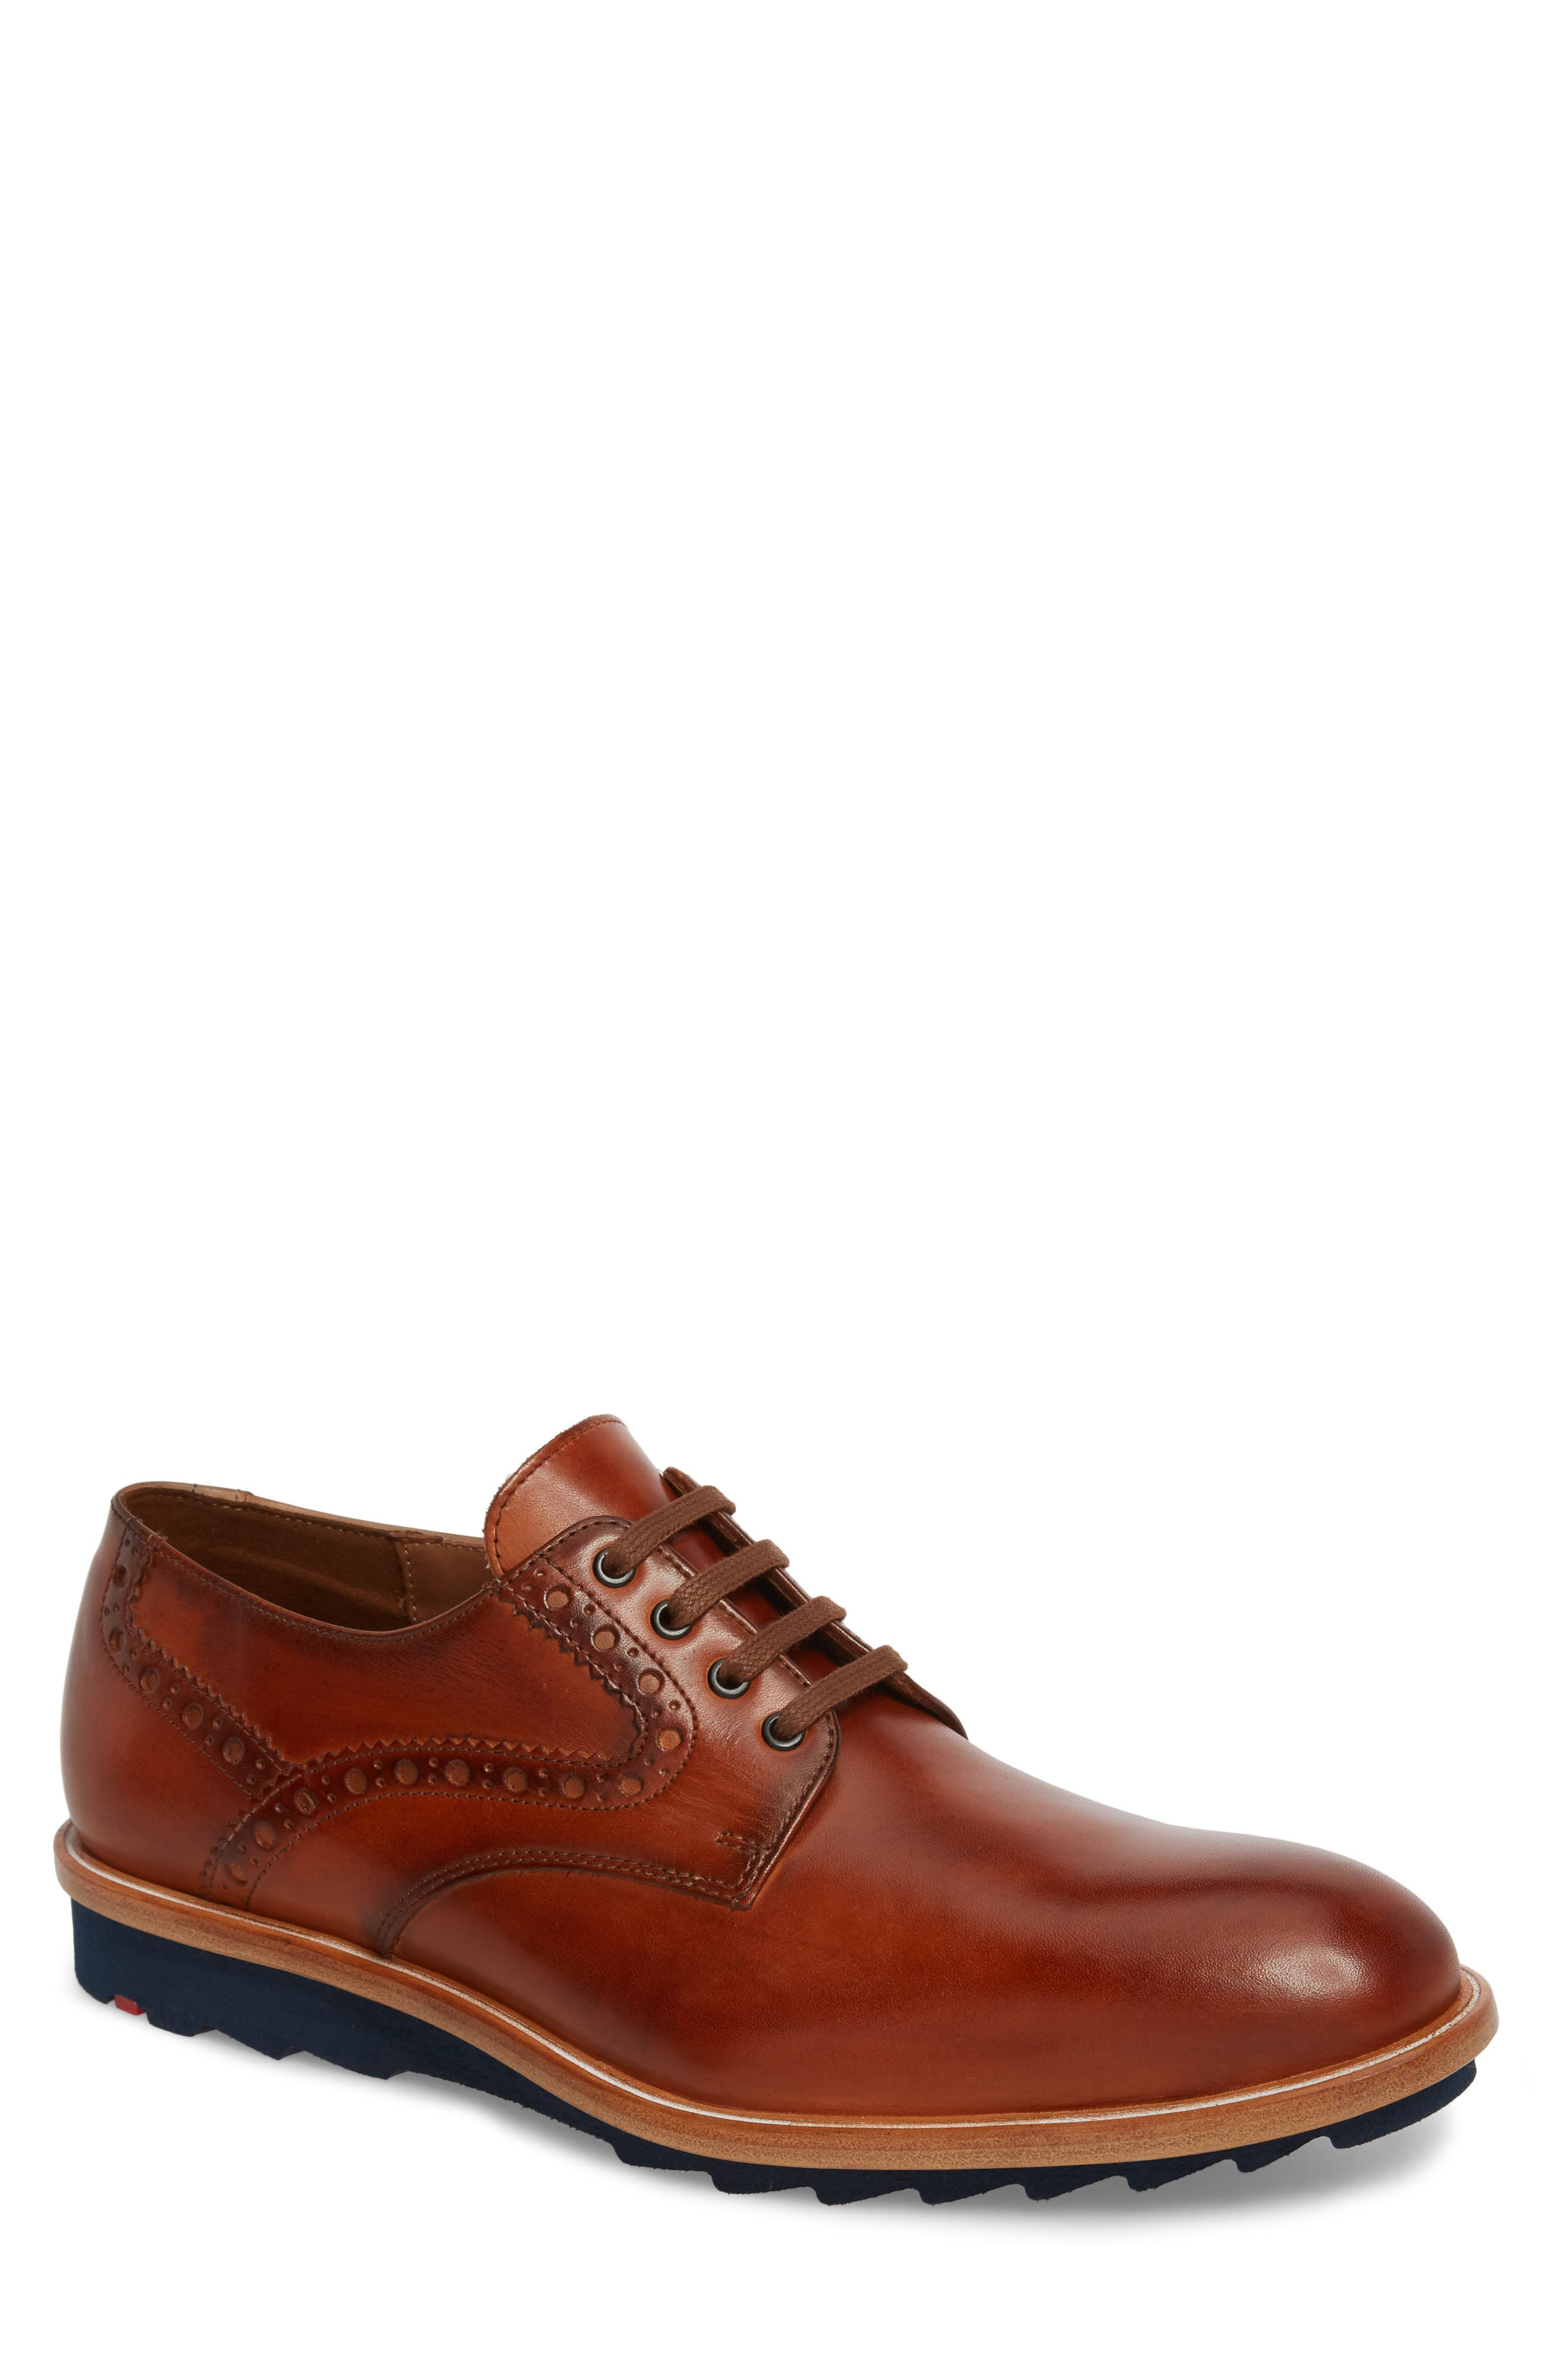 Fabian Plain Toe Derby,                         Main,                         color, Fox Brown Leather